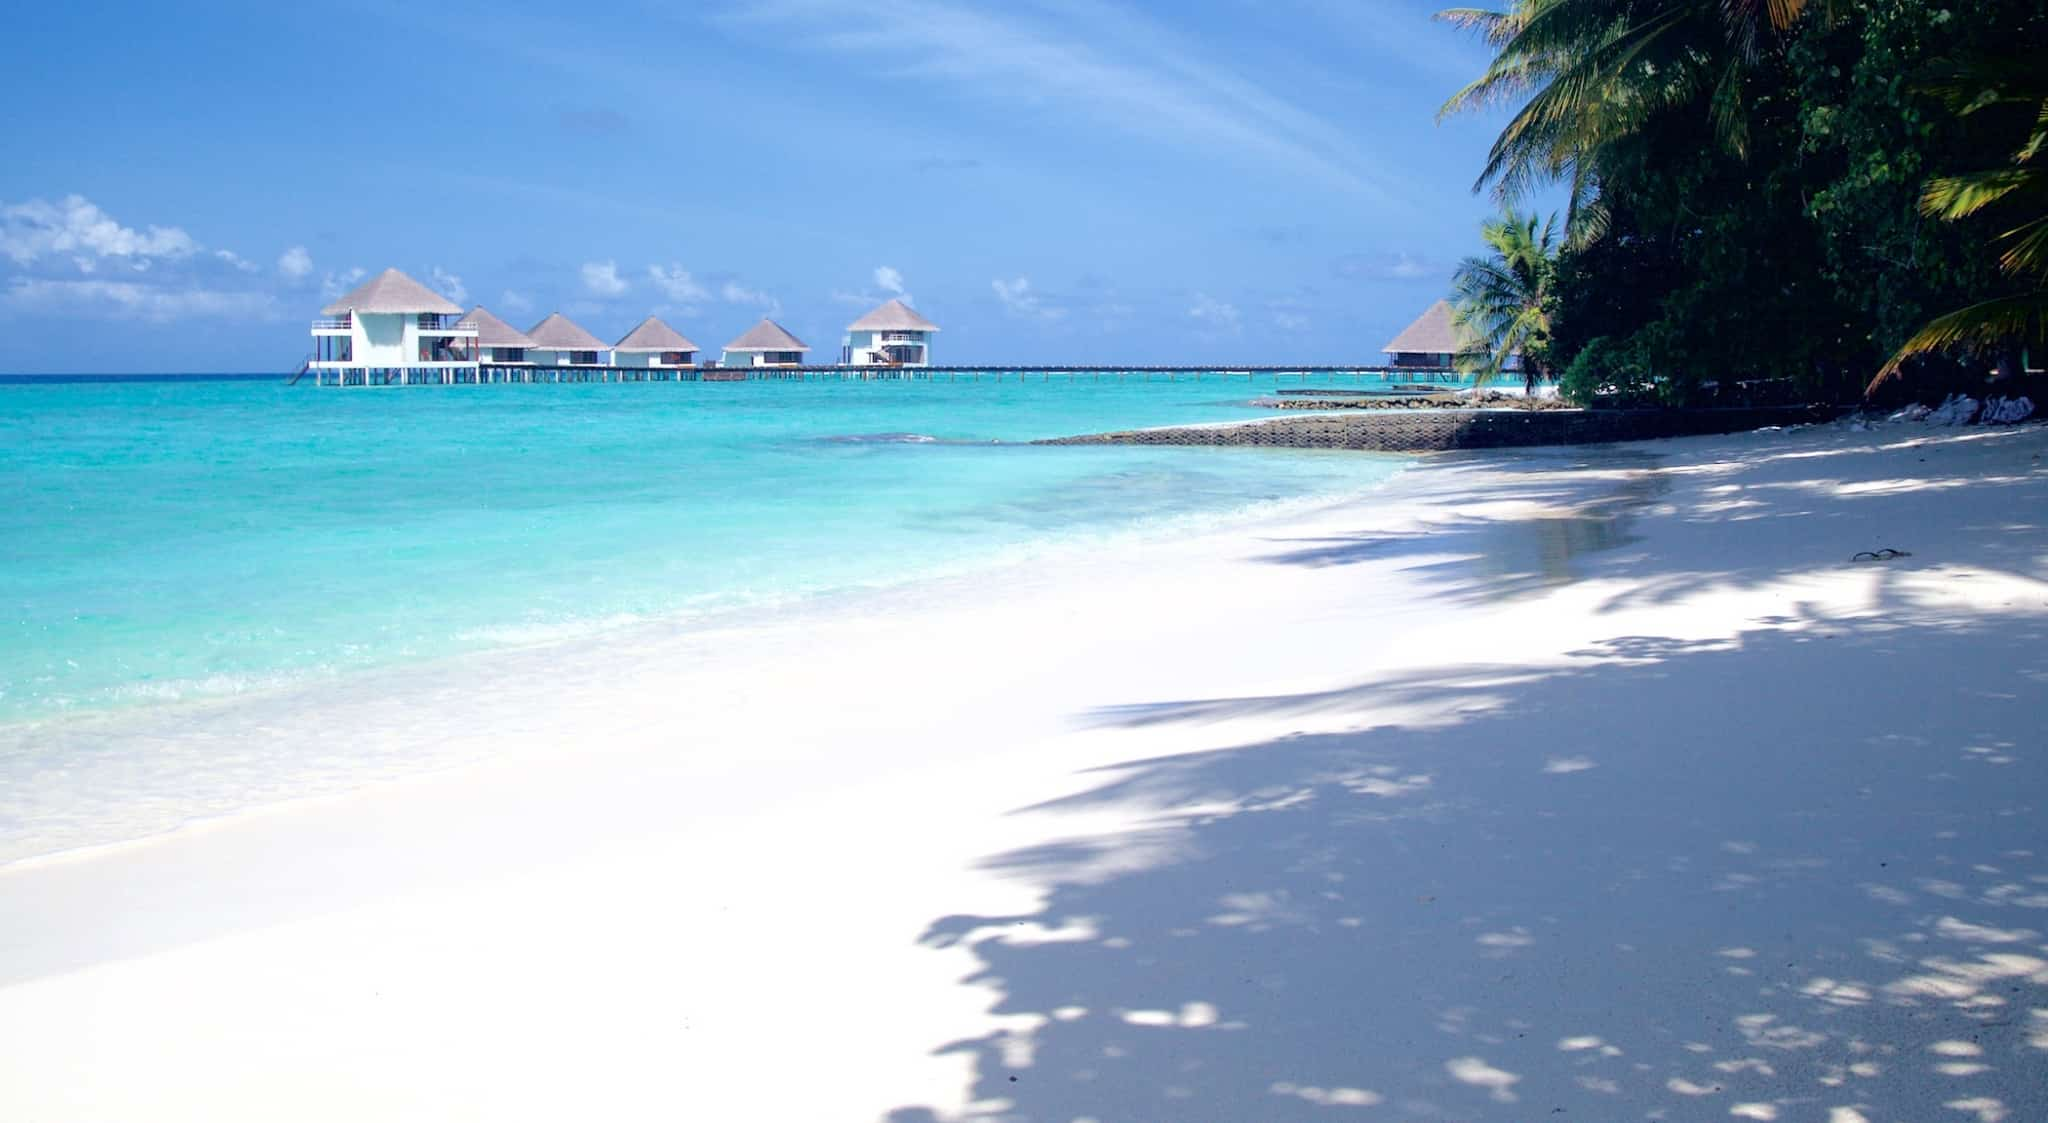 Maldives Bucketlist Destination